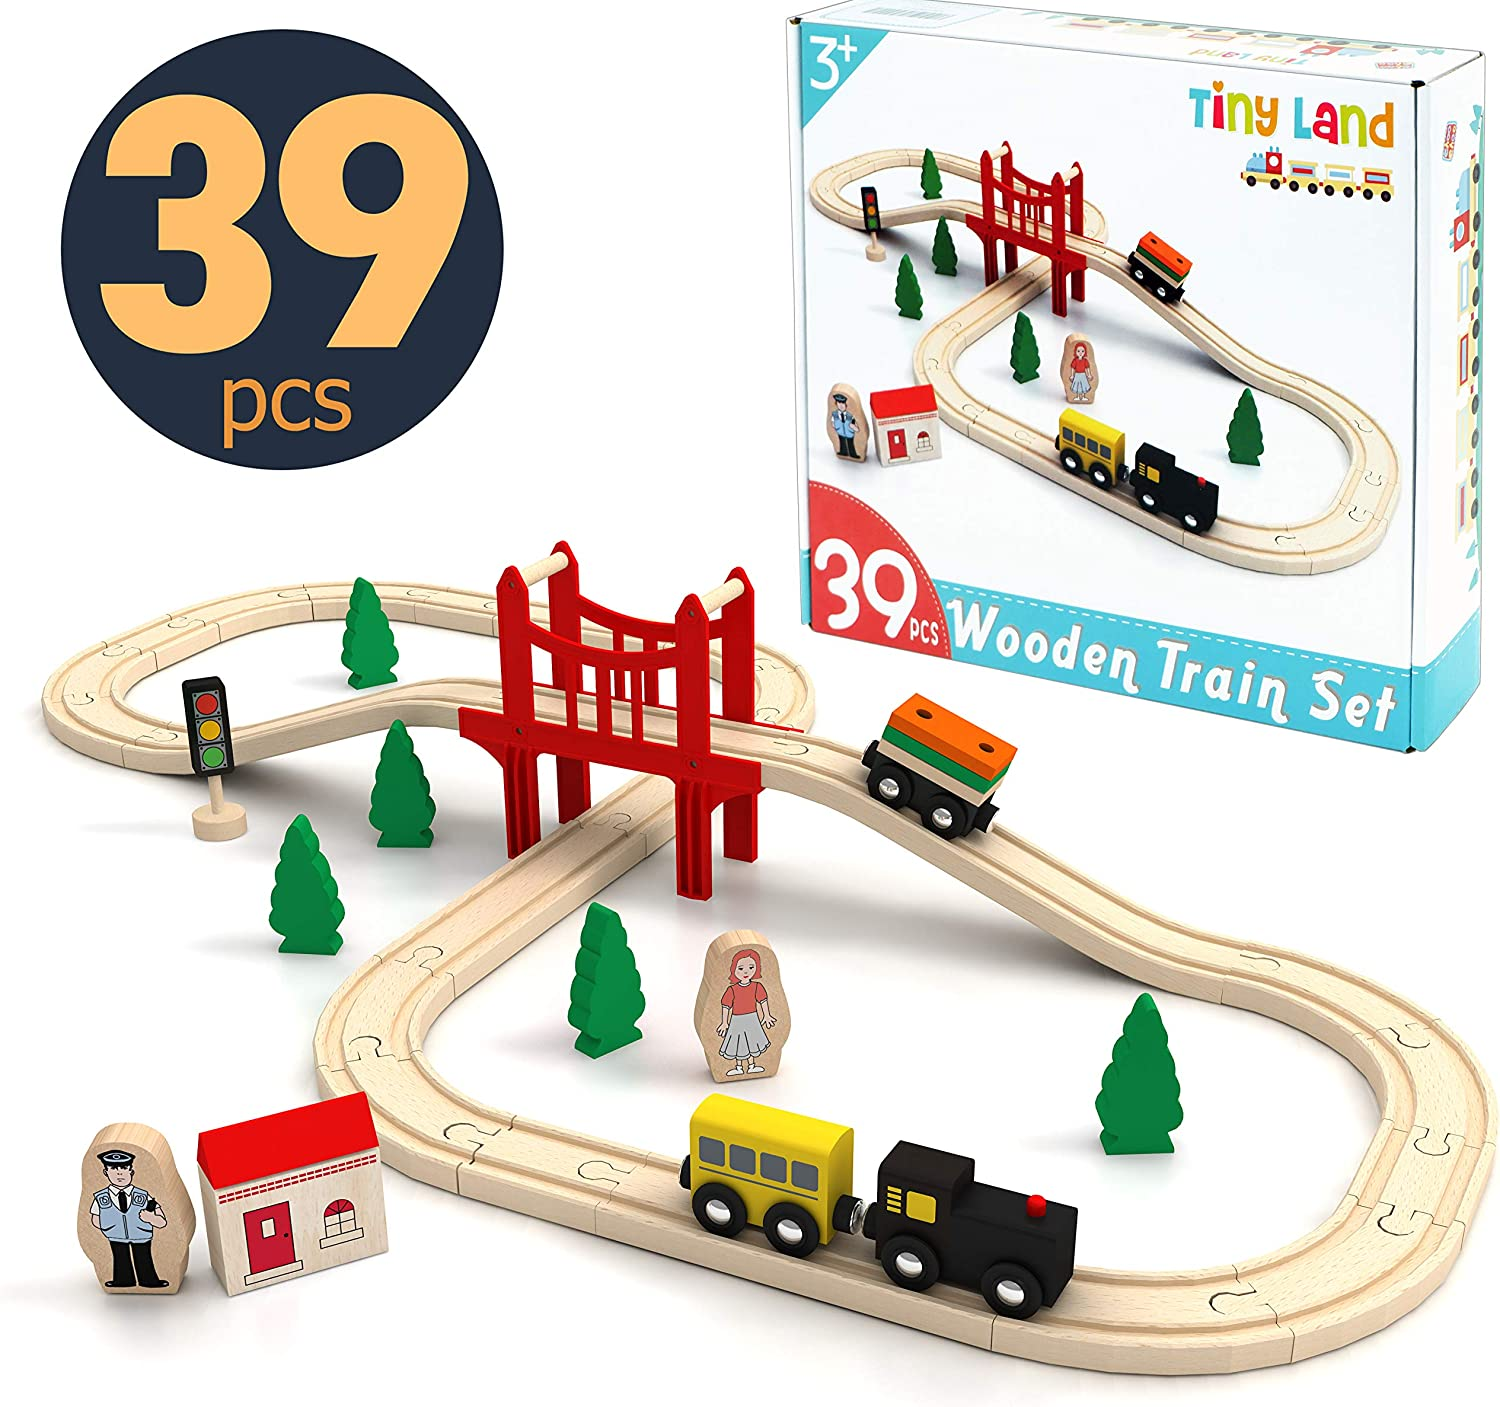 Wooden Train Set Starter 39-Piece Track Pack with Bridge Fits Thomas Brio Chuggington, Engine & Passenger Car, Kids Friendly Building & Construction-Expandable, Changeable-Fun for Girls & Boys